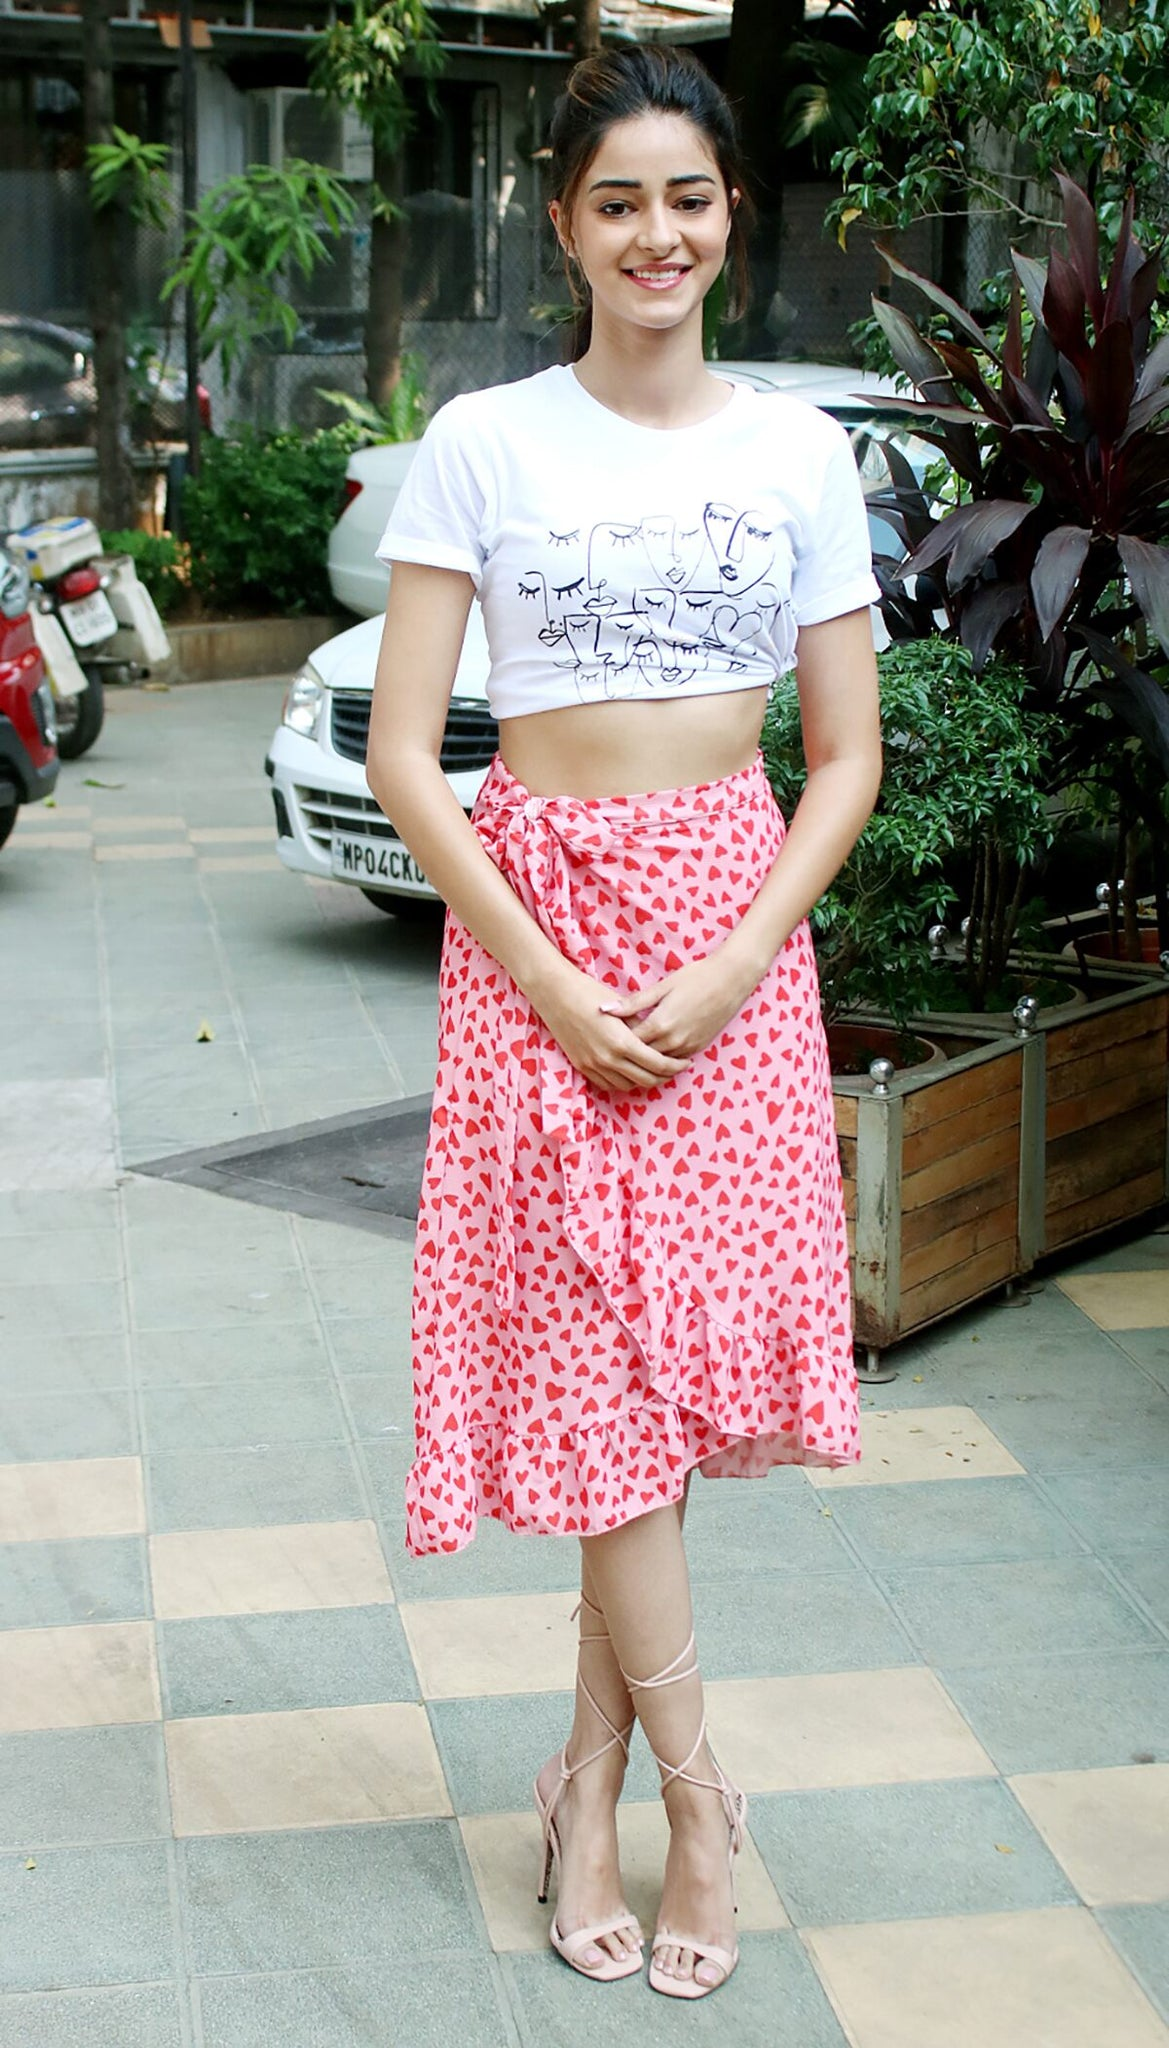 Ananya-Panday-in-pink-printed-skirt-teamup-with-white-crop-top